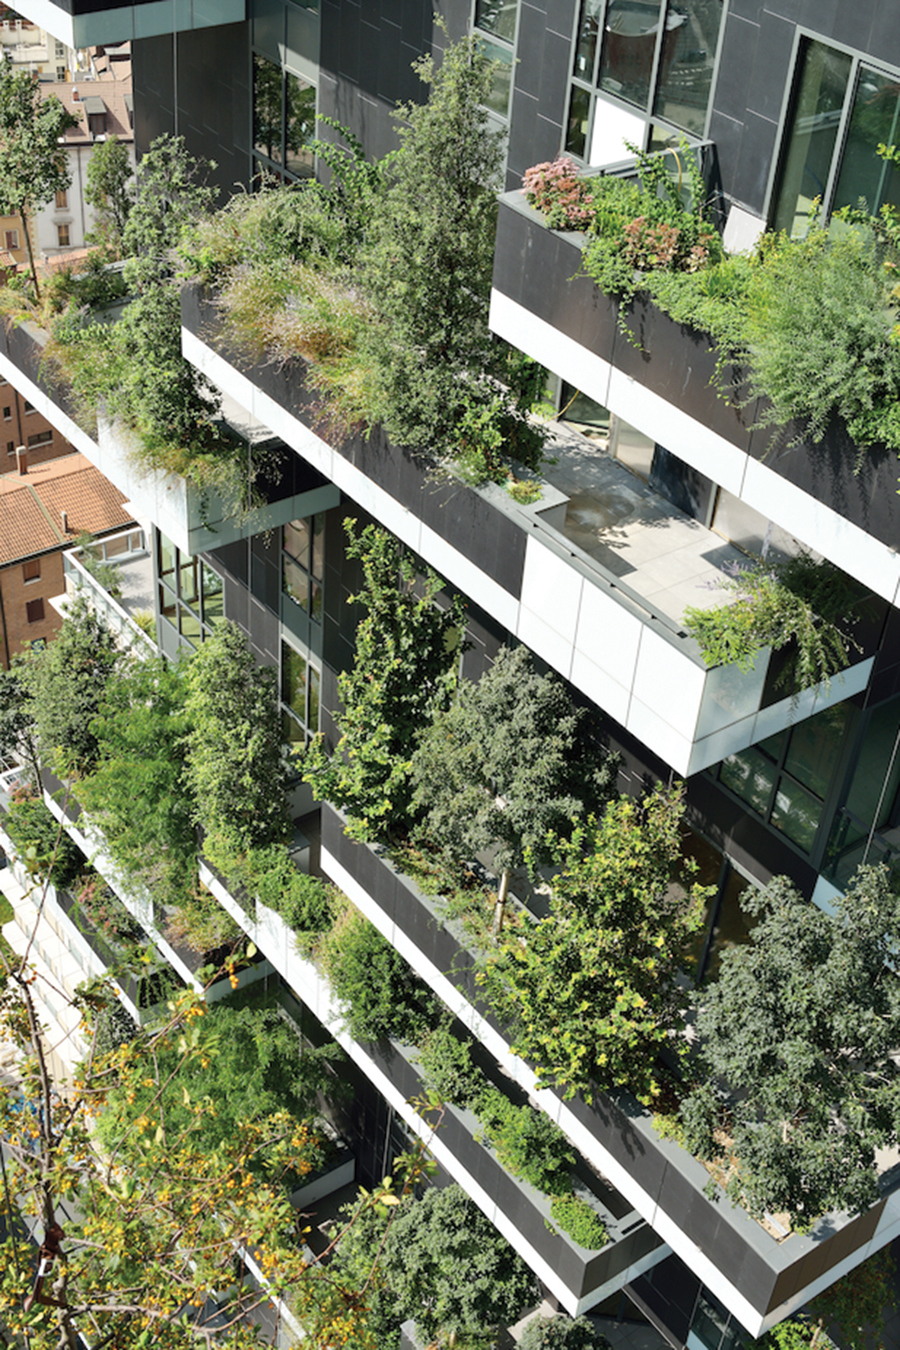 Stefano Boeri's Bosco Verticale creates a high-rise forest in Milan. Photo by Paolo Rosselli